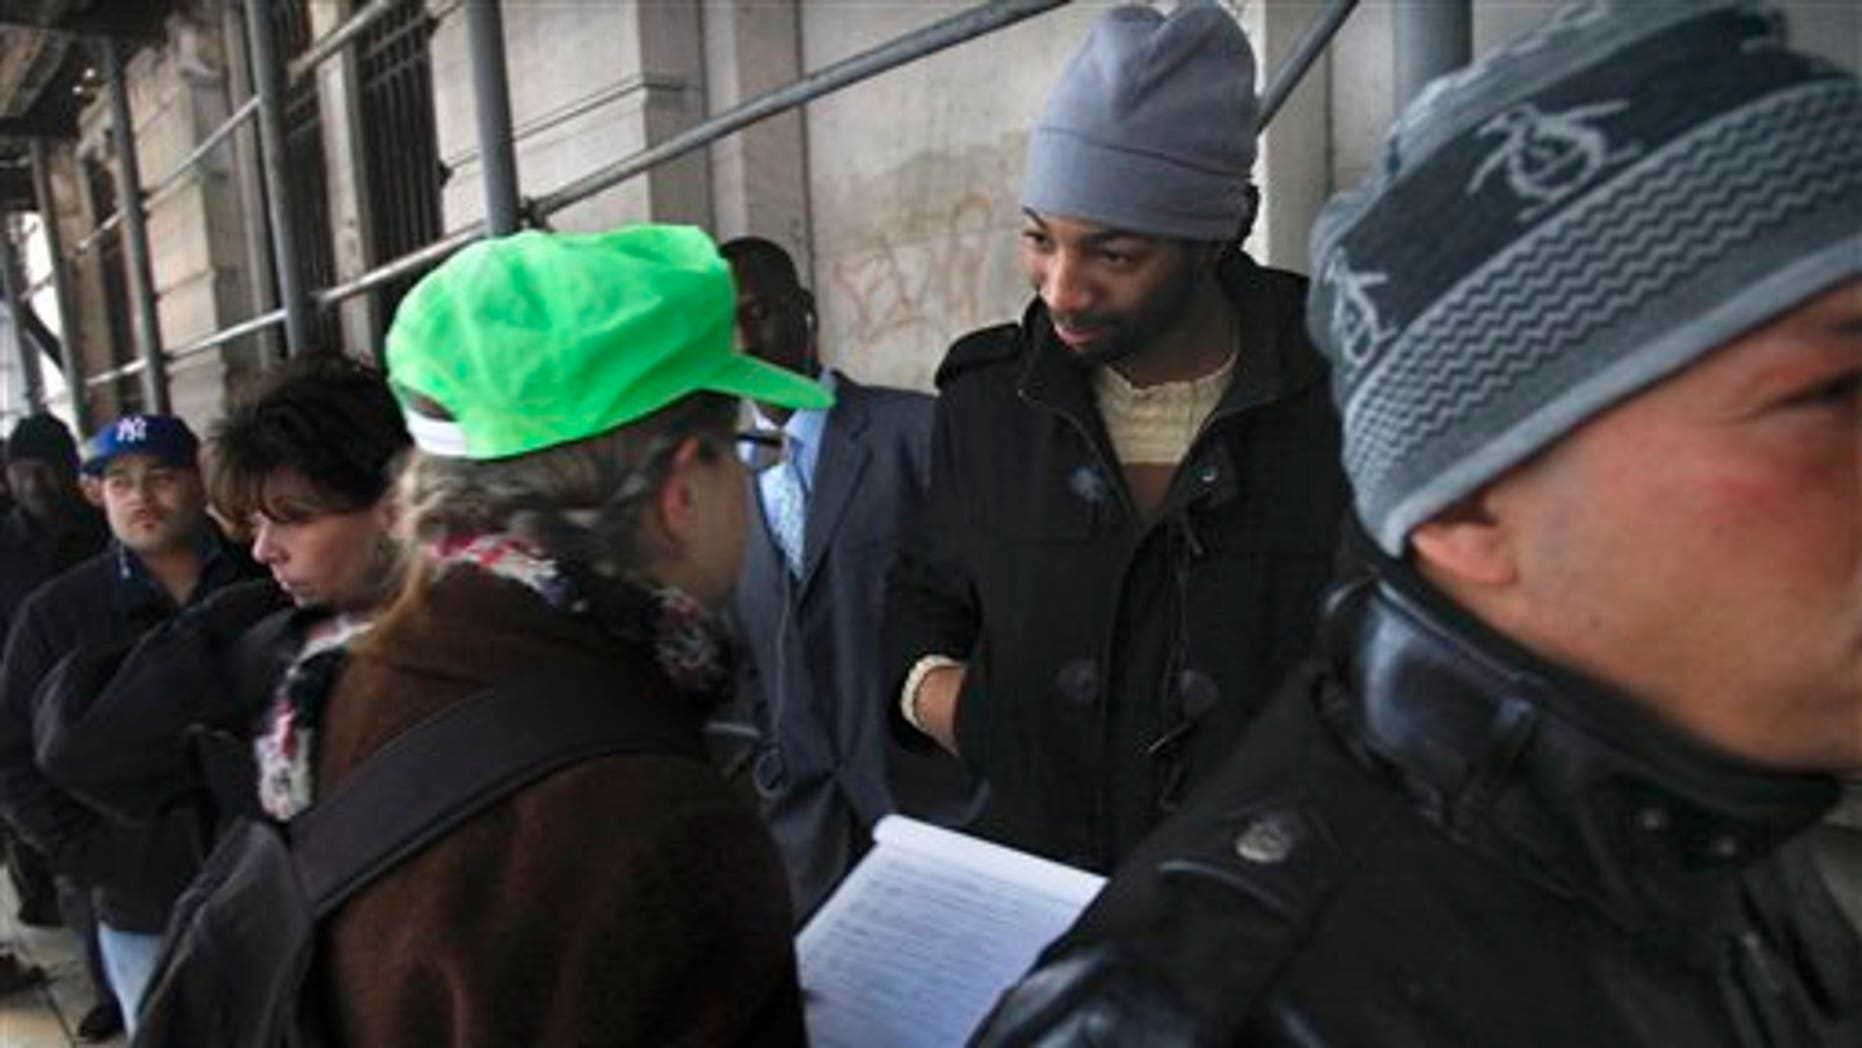 Dec. 14: Hero Vincent, second from right, an early protester in the Occupy Wall Street movement, listens as Judith Anderson, a lawyer working with the National Lawyers Guild, records information about him as he stands in line outside Manhattan Criminal Court on Wednesday.